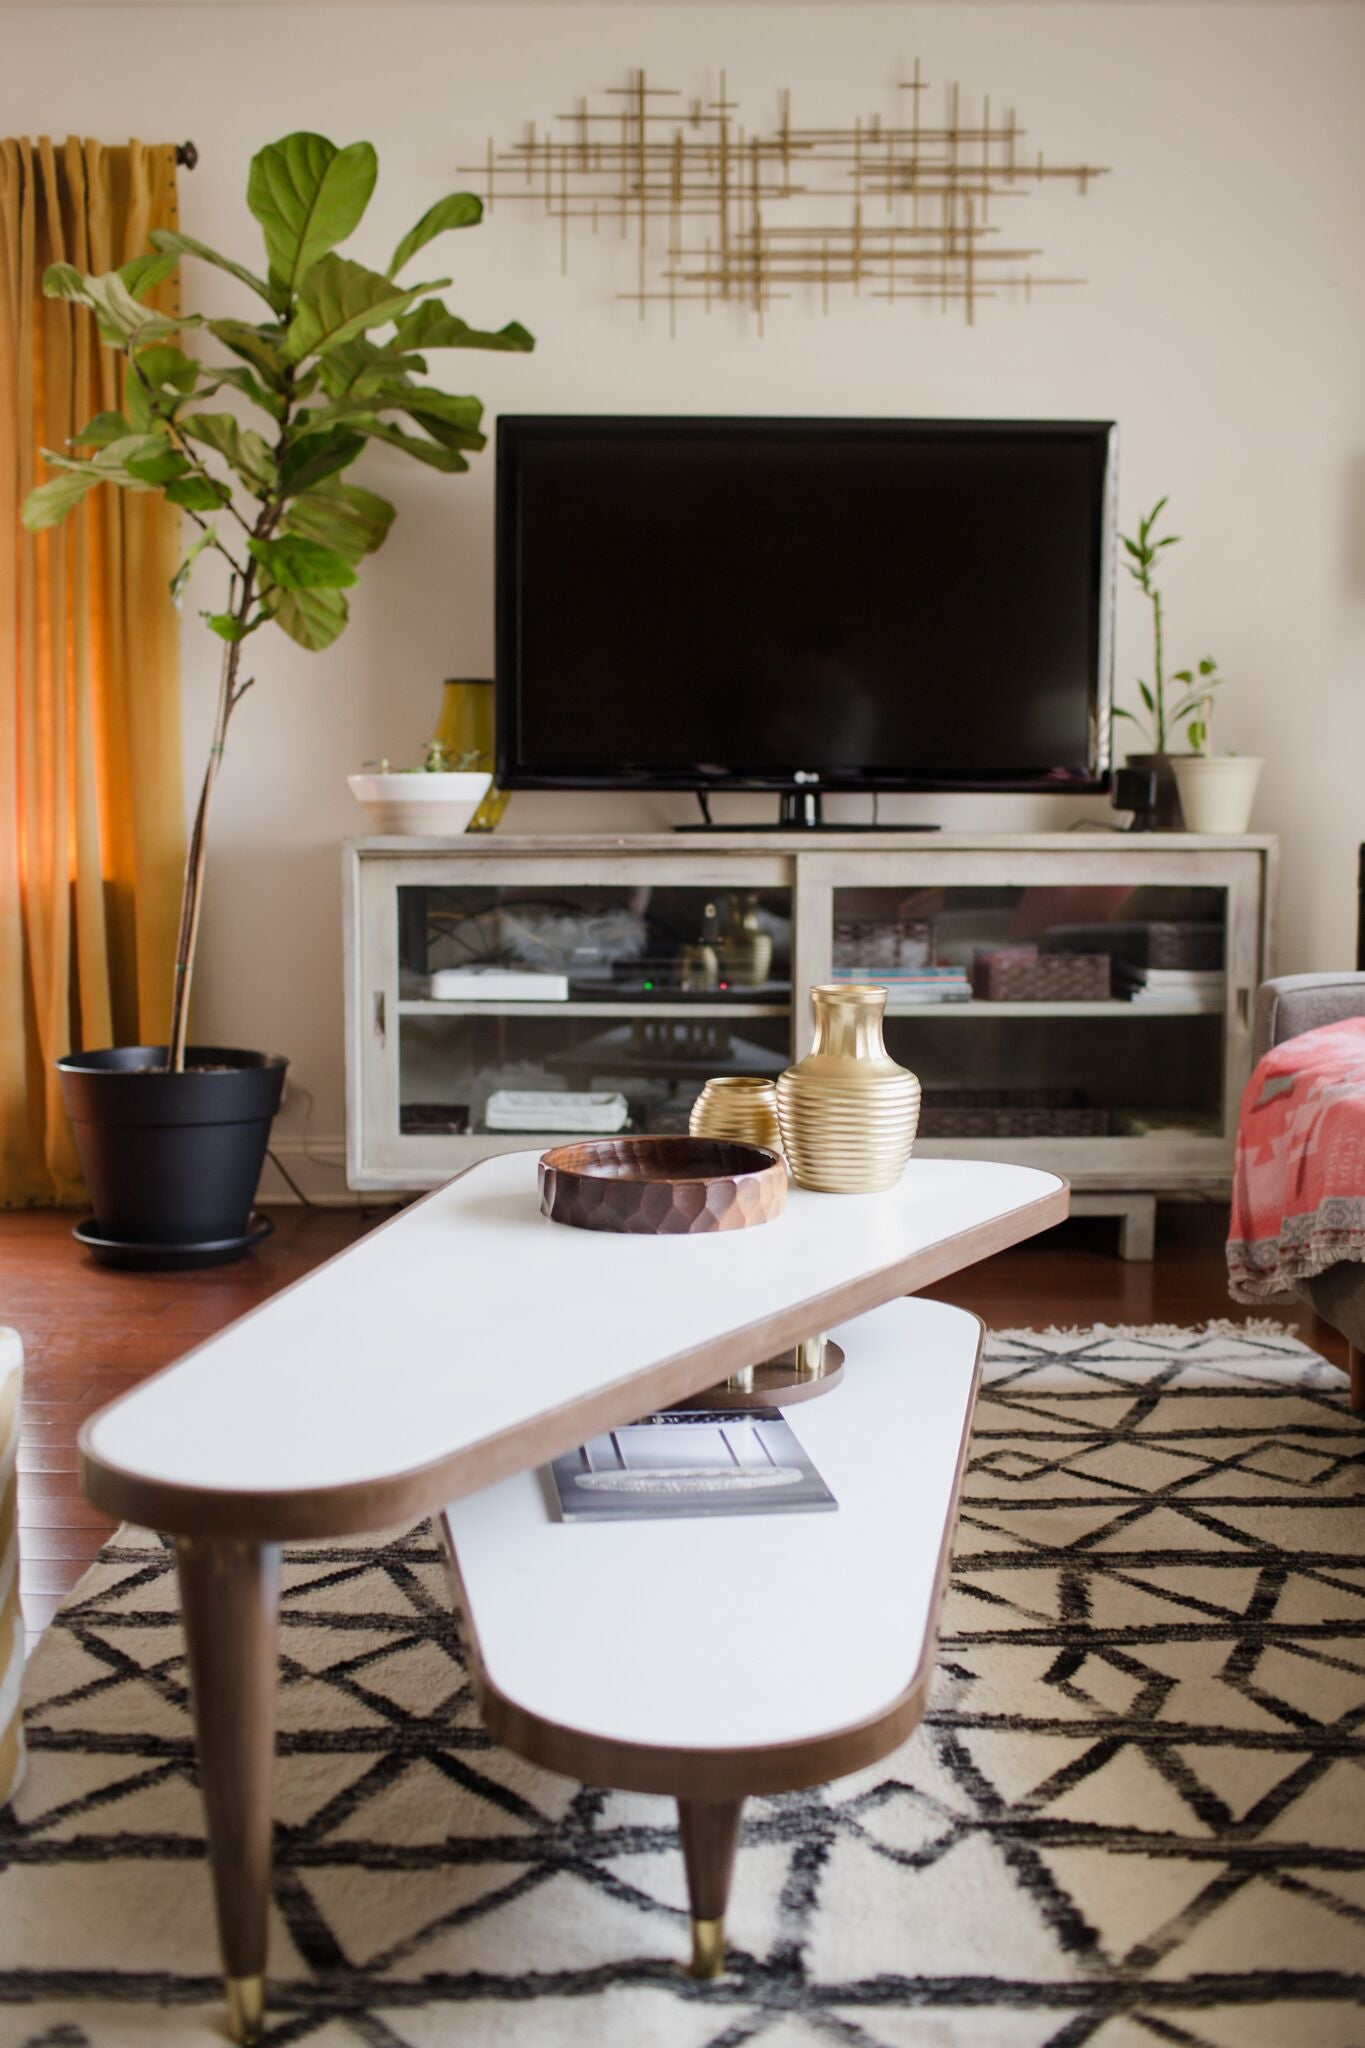 decorating ONE room 3 different ways on astral riles blog 12